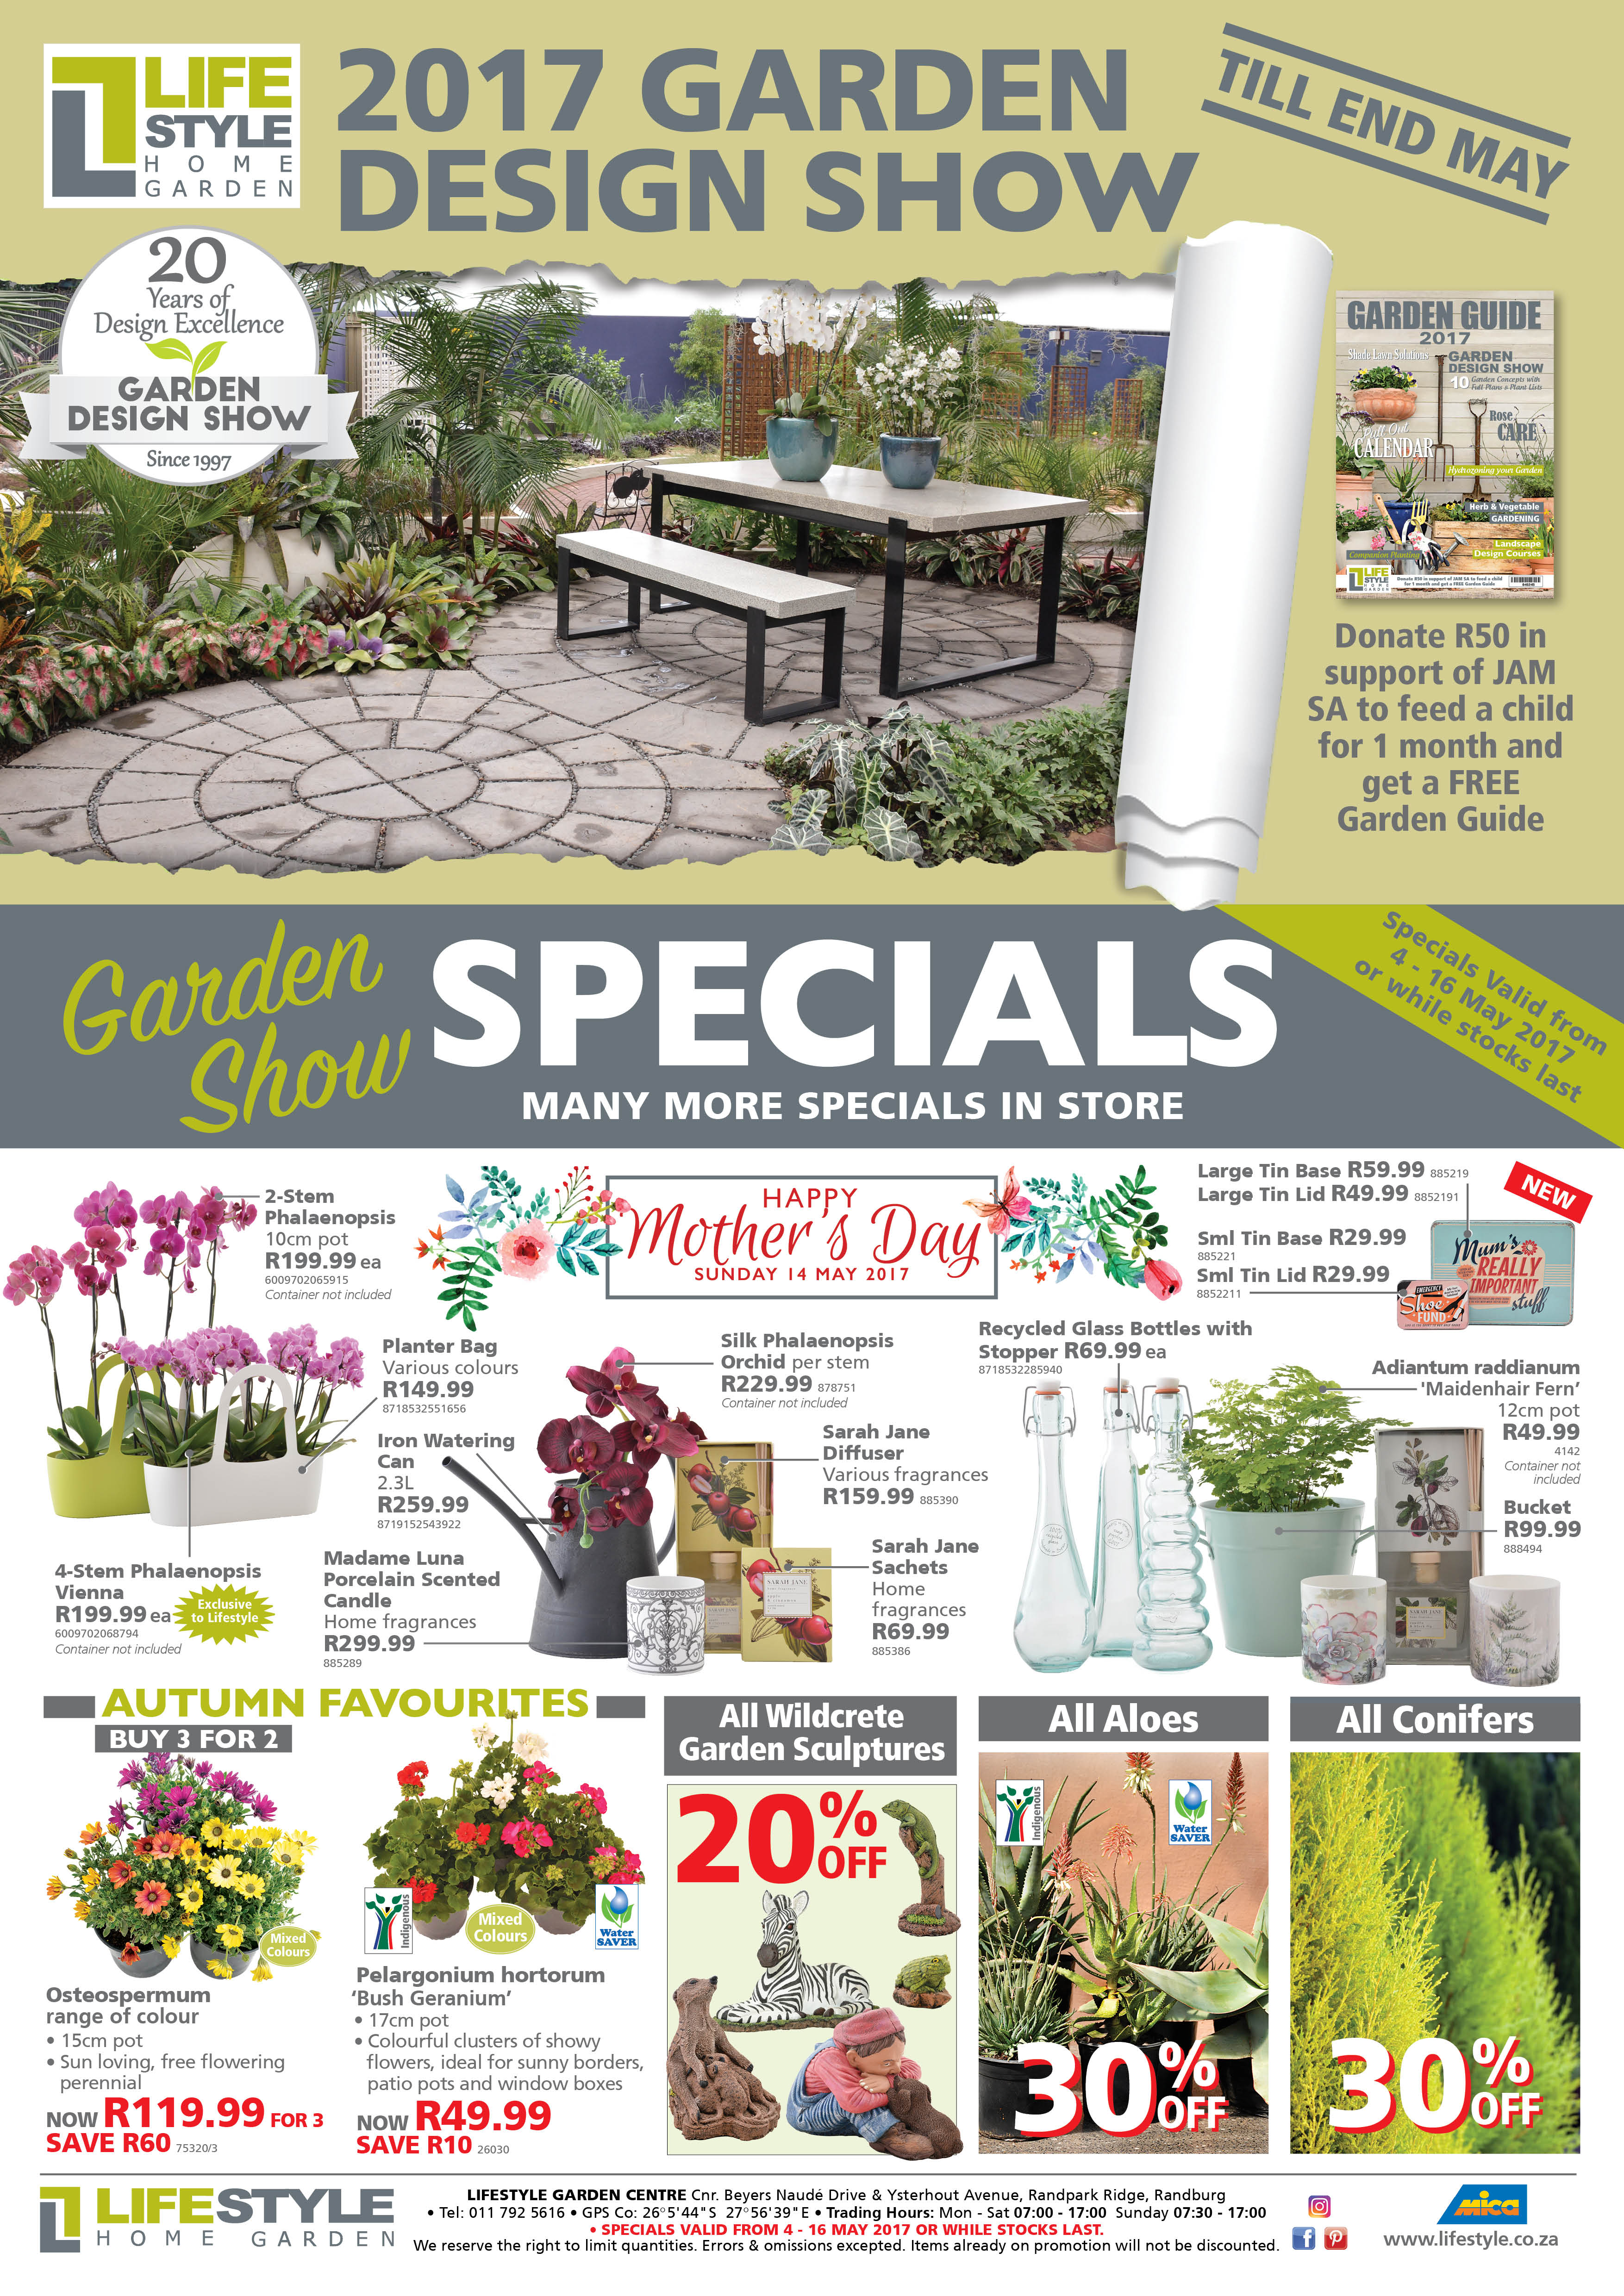 Plant Specials Mother's Day Gifts